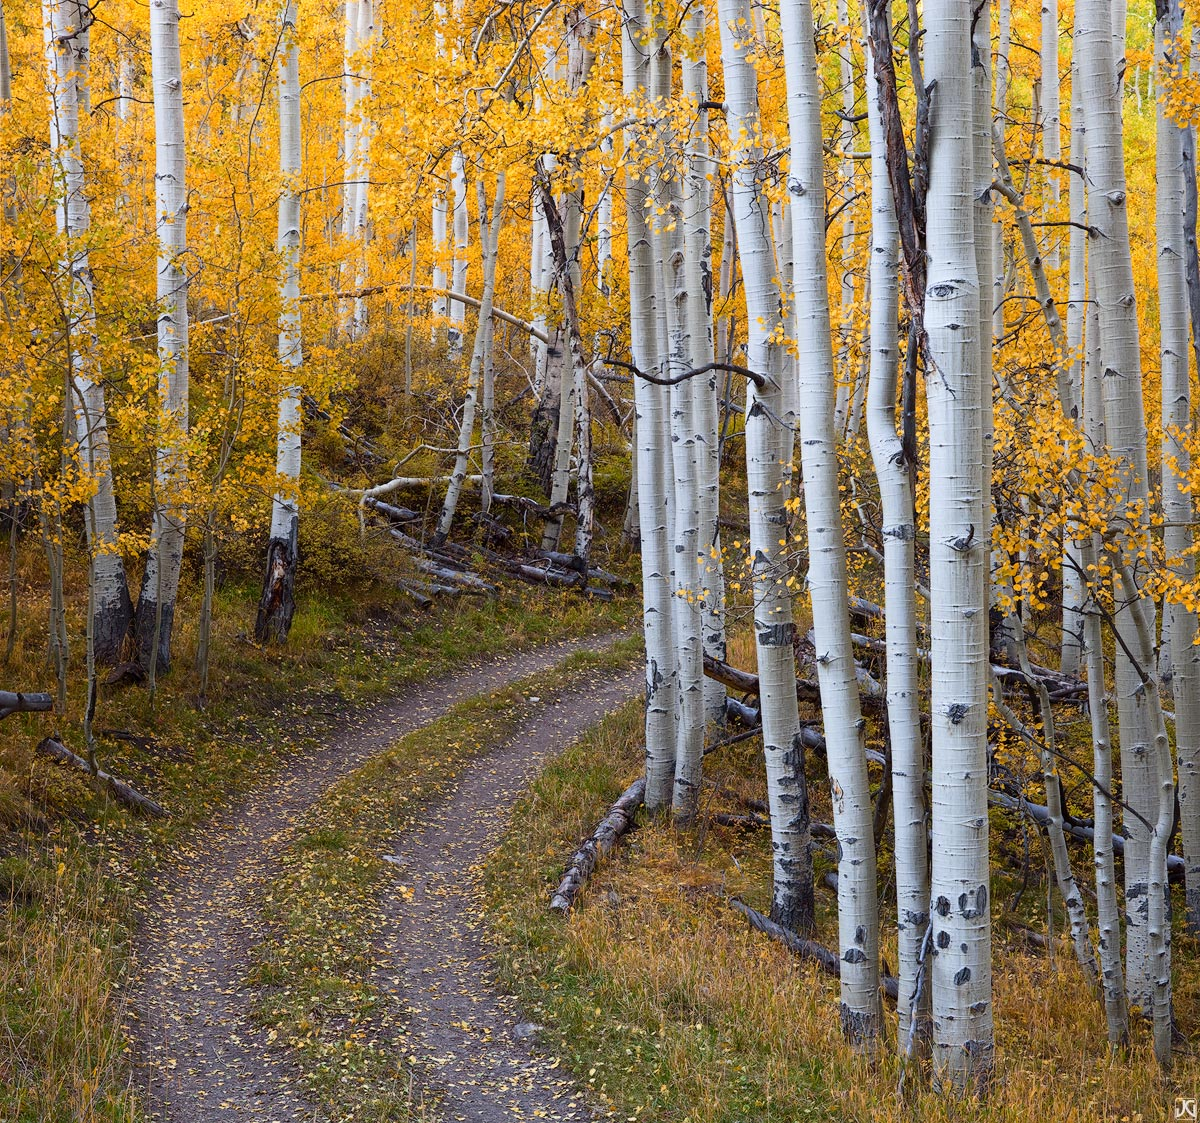 Colorado, aspen, autumn, forest, Last Dollar, Uncompahgre National Forest, road, San Juan Mountains, photo